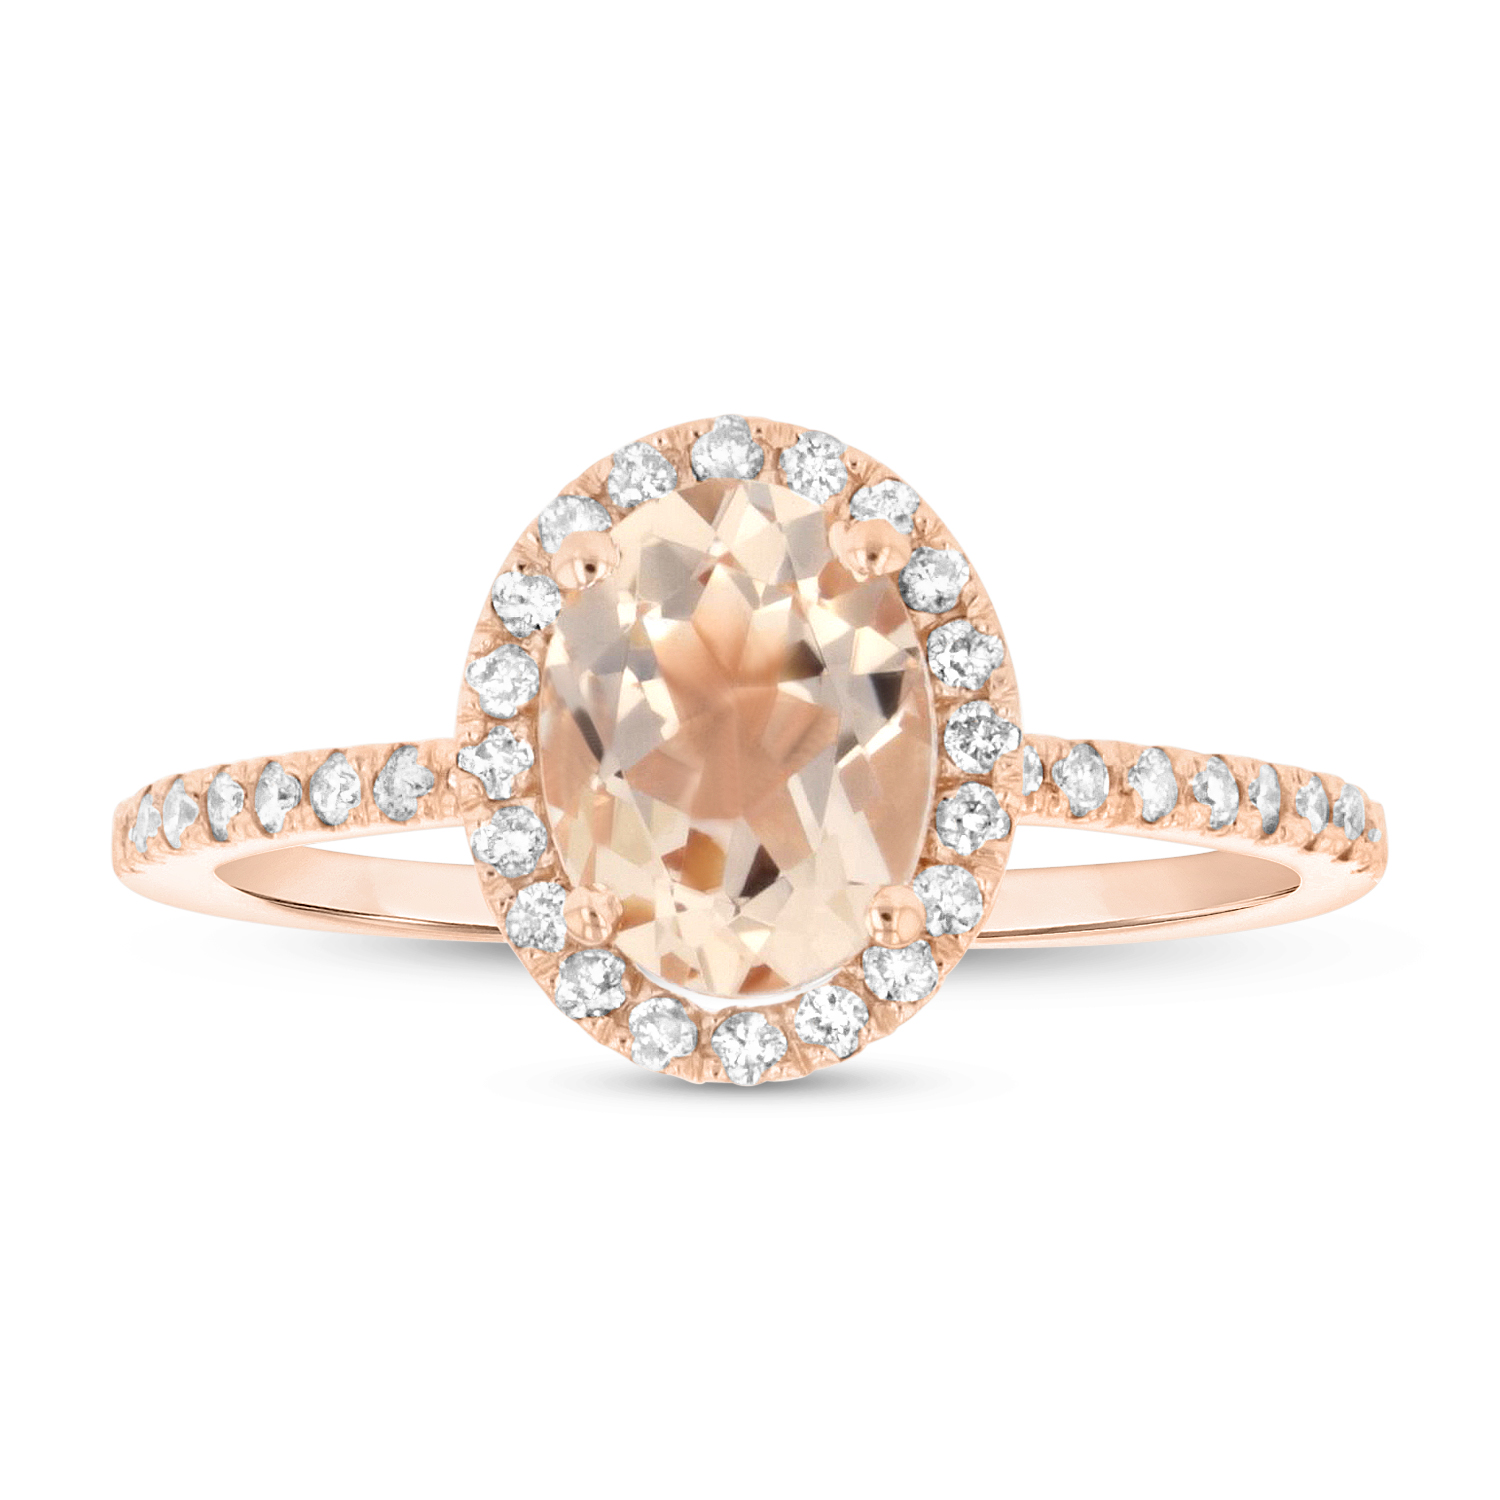 View 8X6 mm Oval Morganite and Diamond Ring in 14k Rose Gold